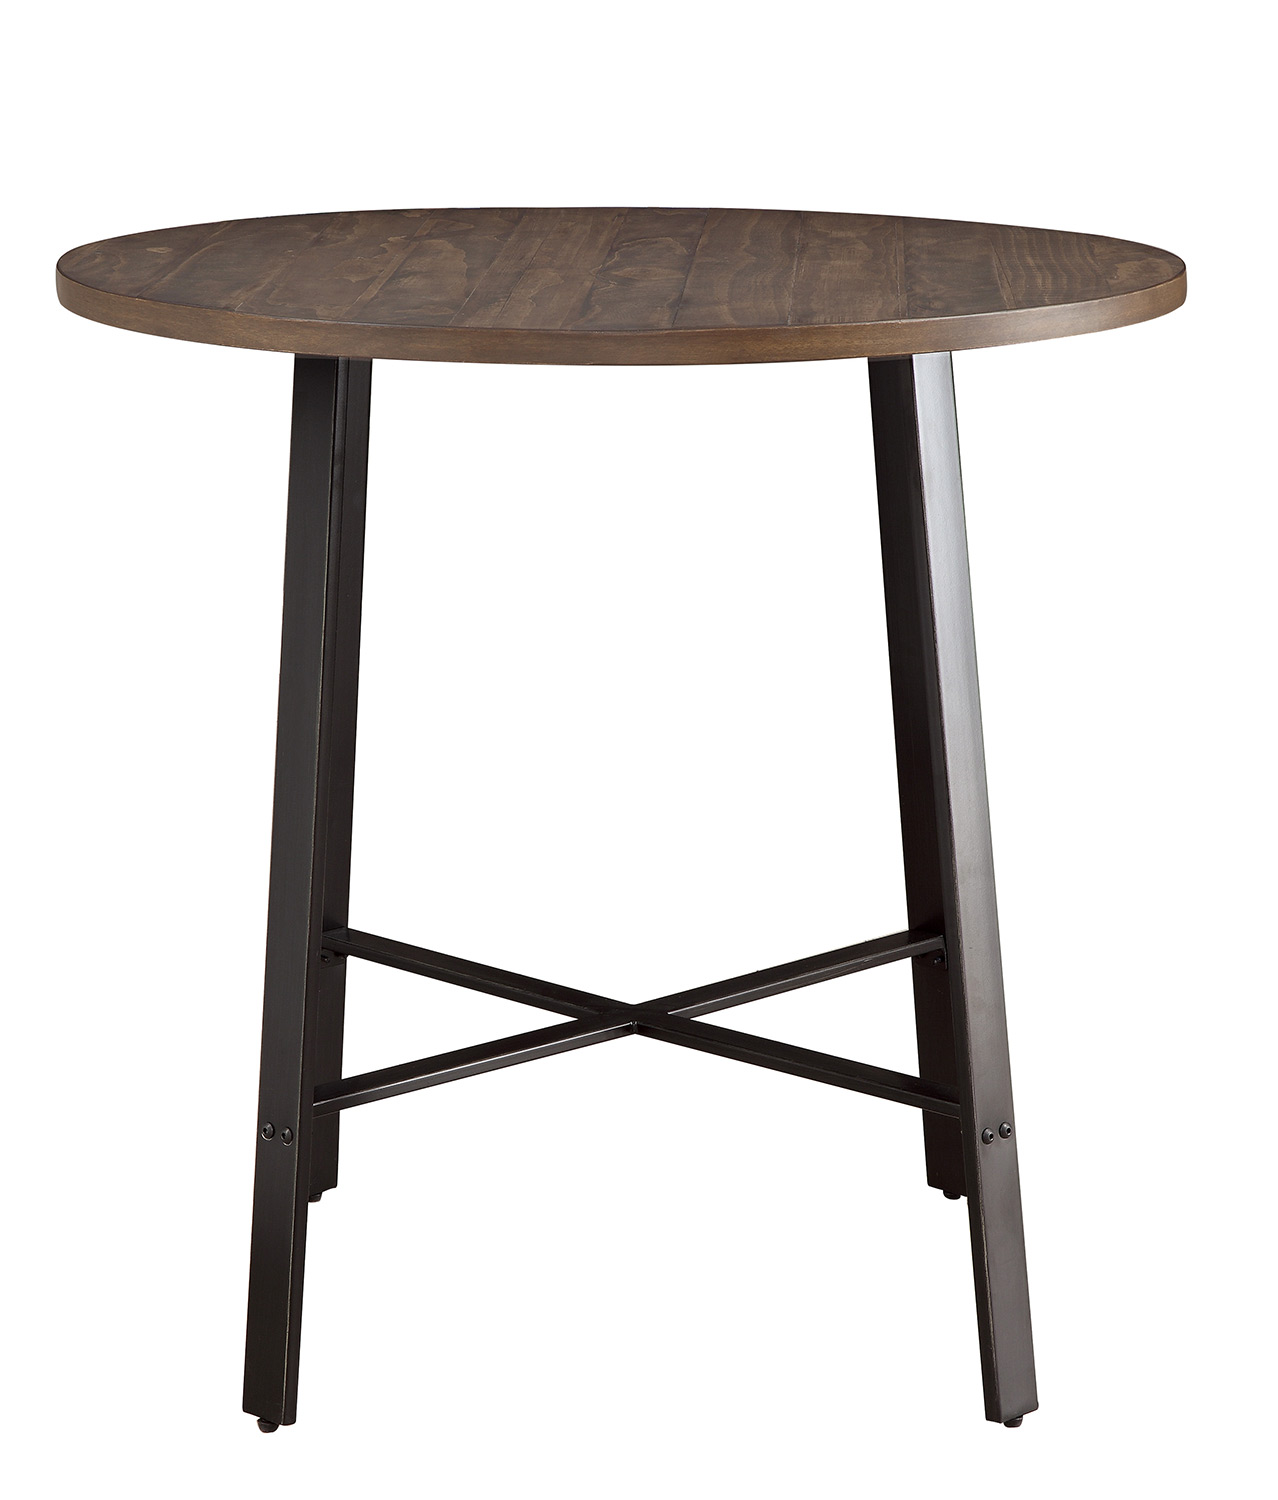 Homelegance Chevre Round Counter Height Table - Rustic - Gray Metal